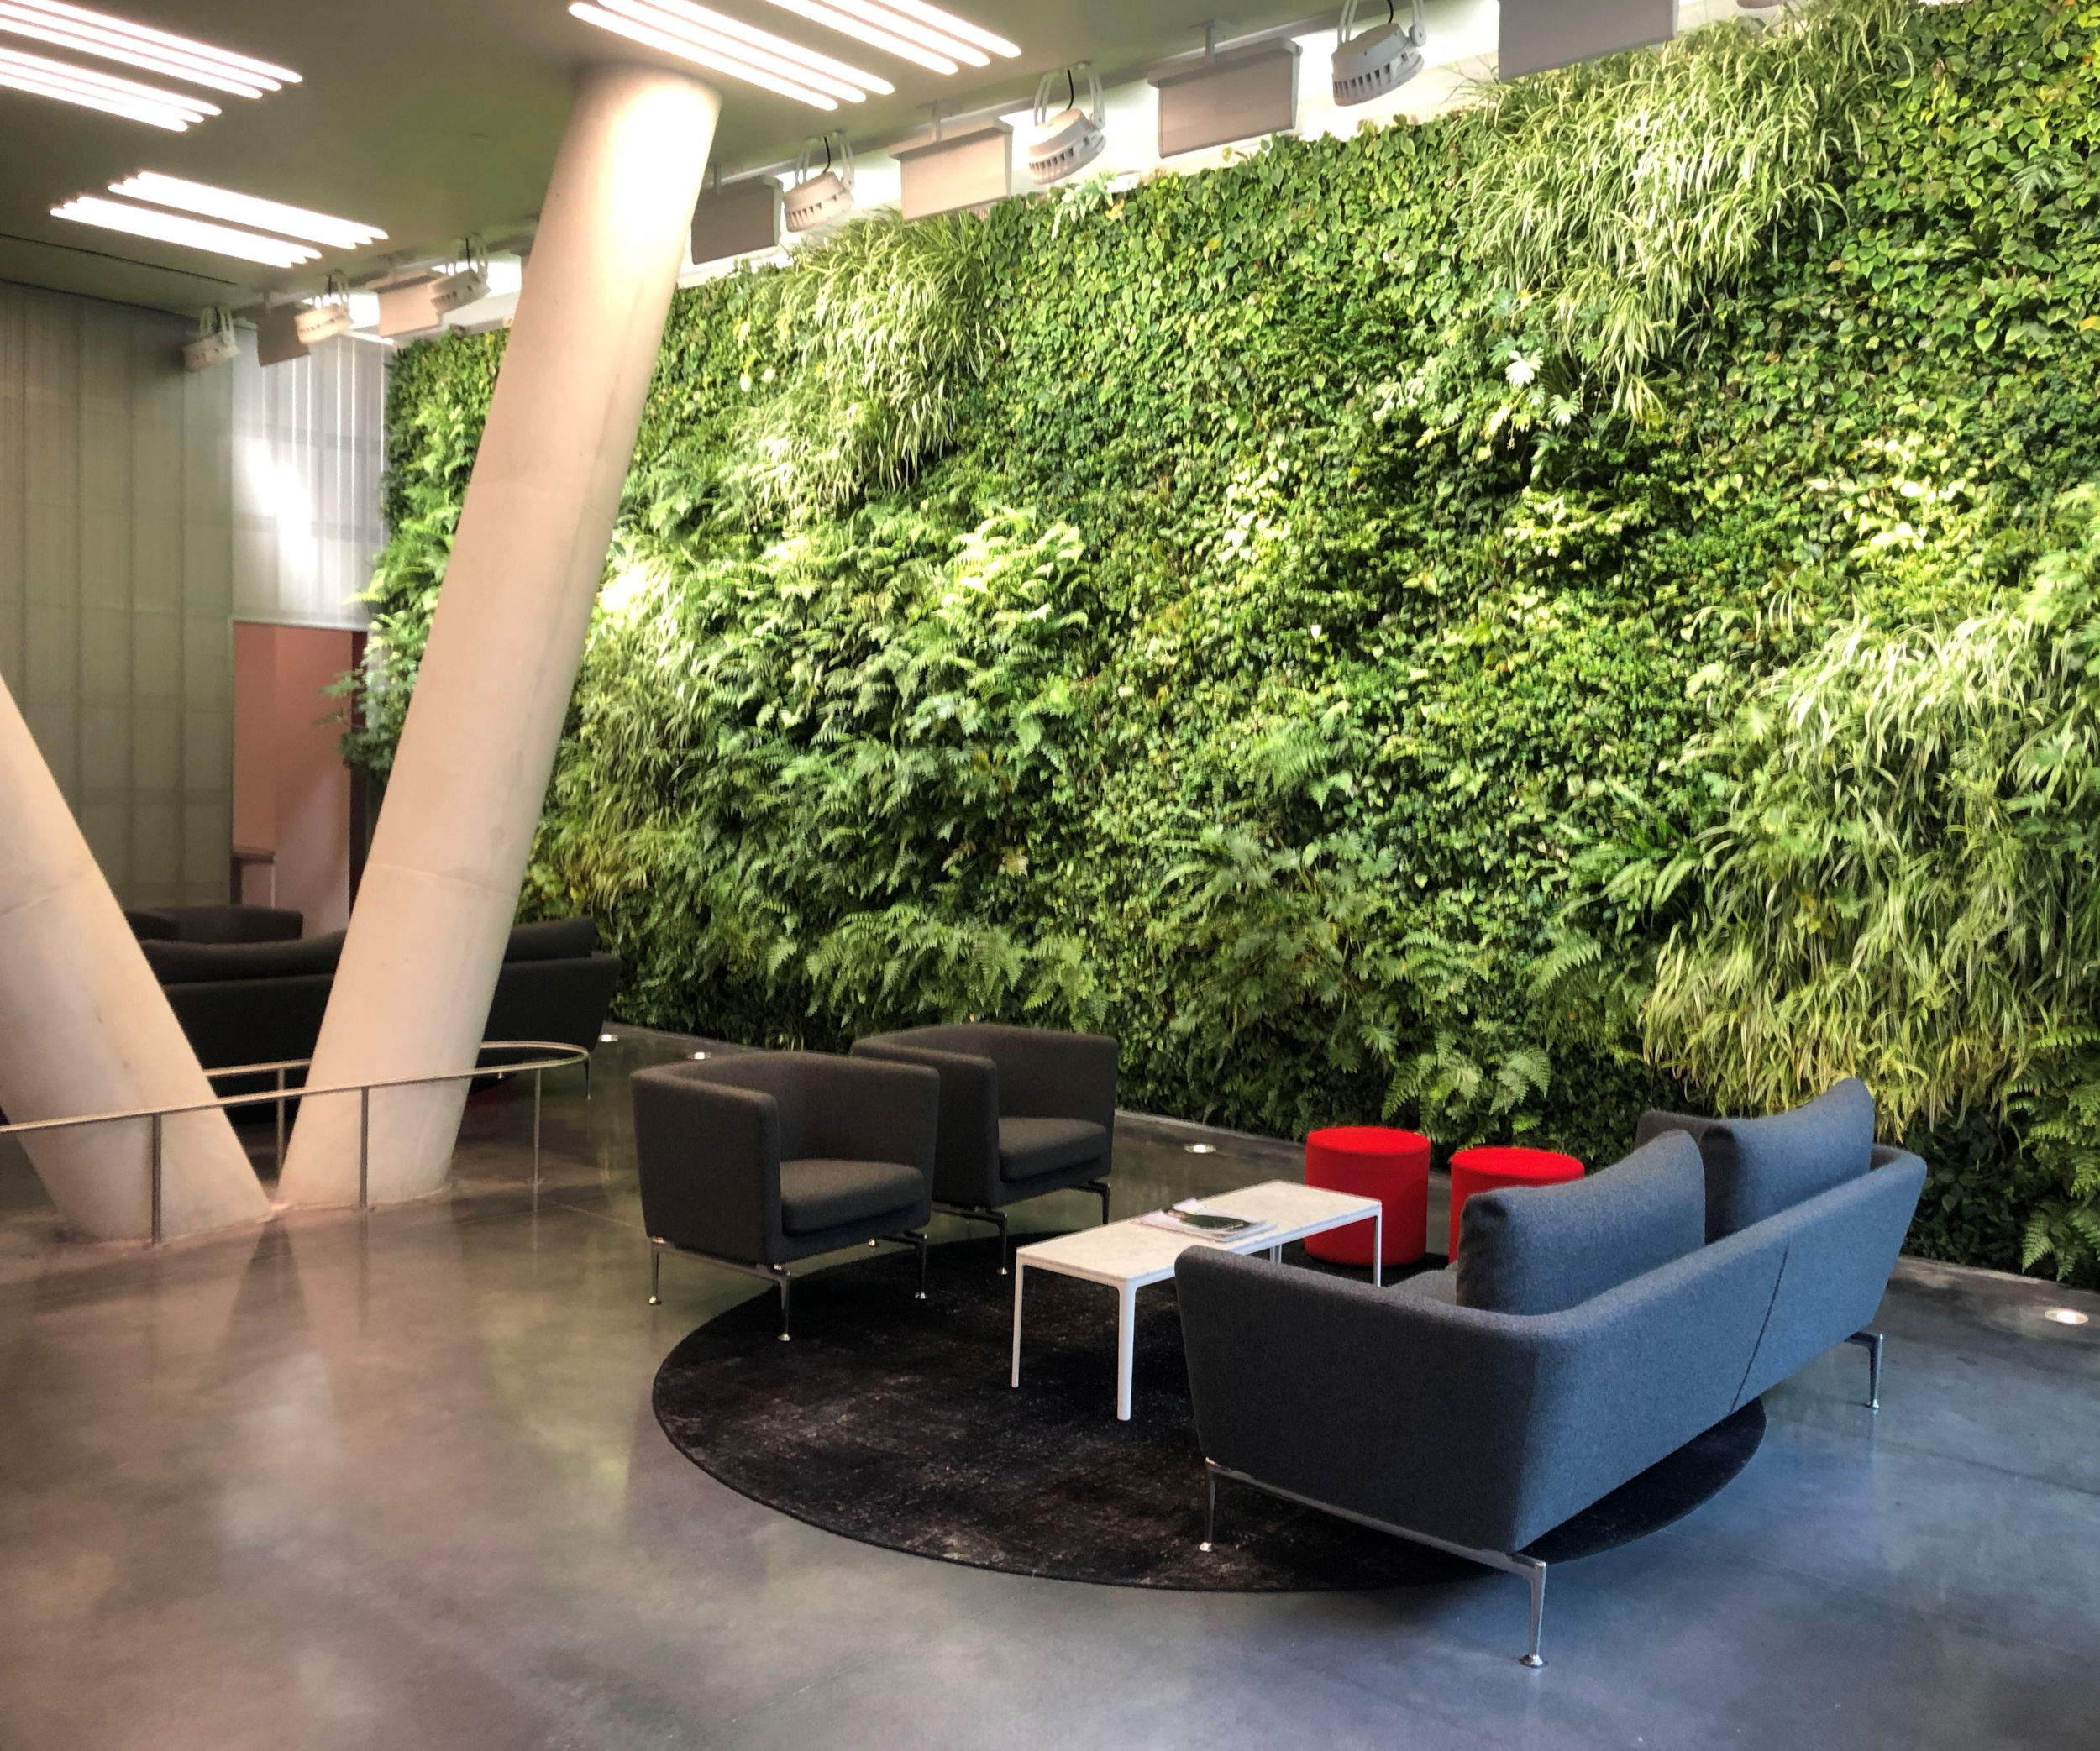 Indoor Living Walls - An indoor living wall creates a green oasis in an office, hospital, or school building. This facade system ensures constant healthy air quality, increases job satisfaction, productivity, and reduces ambient noise.